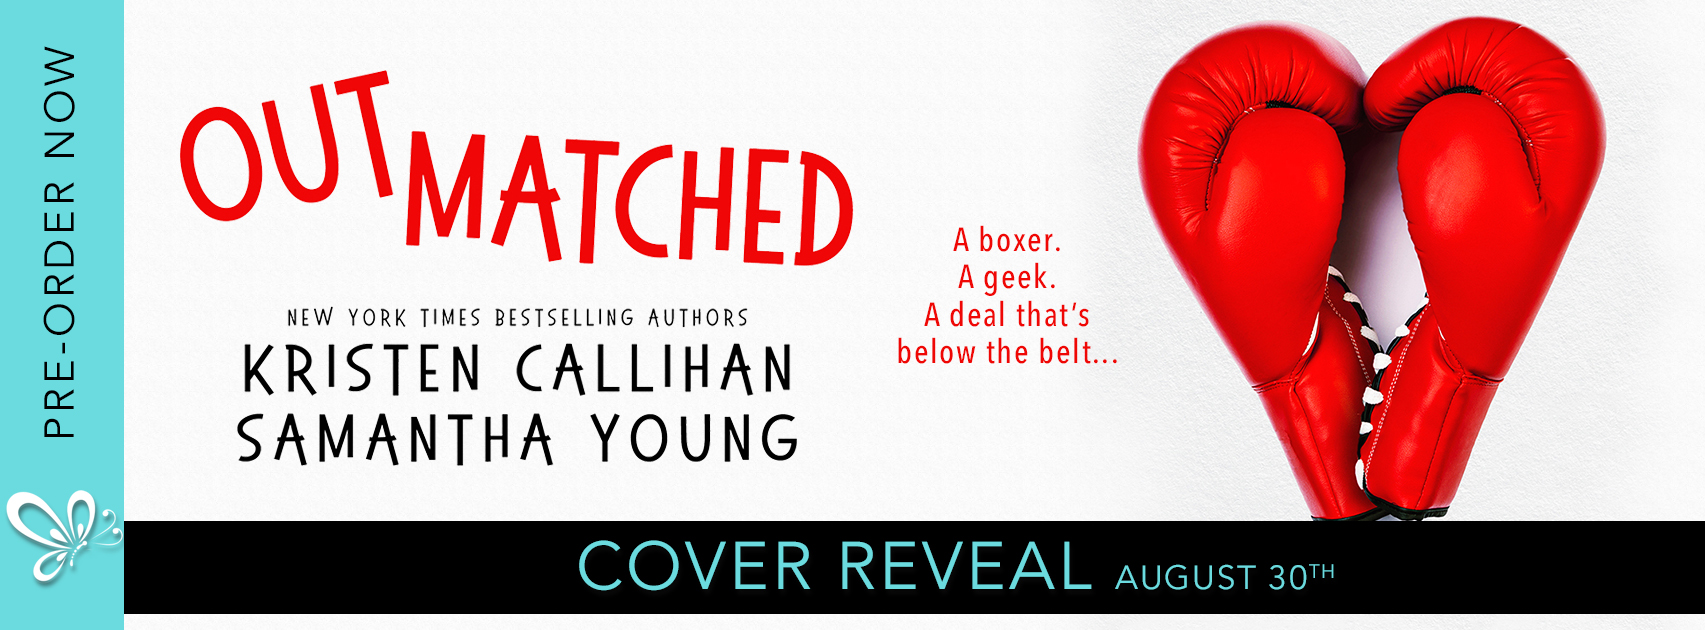 Cover Reveal: Outmatched by Kristen Callihan and Samantha Young